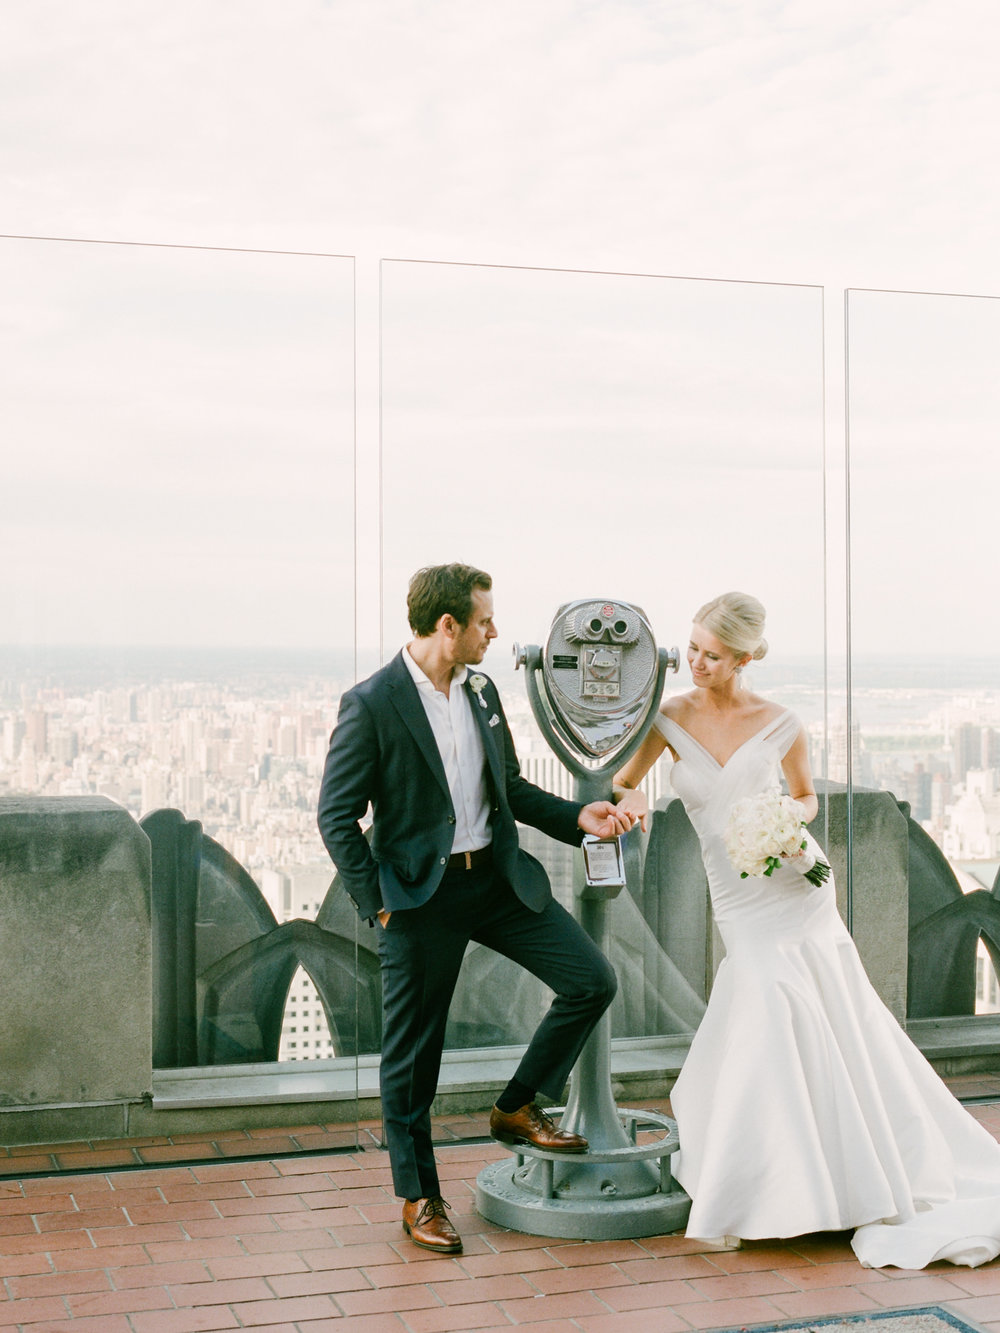 Intimate-NYC_wedding_ by Tanya Isaeva-151.jpg